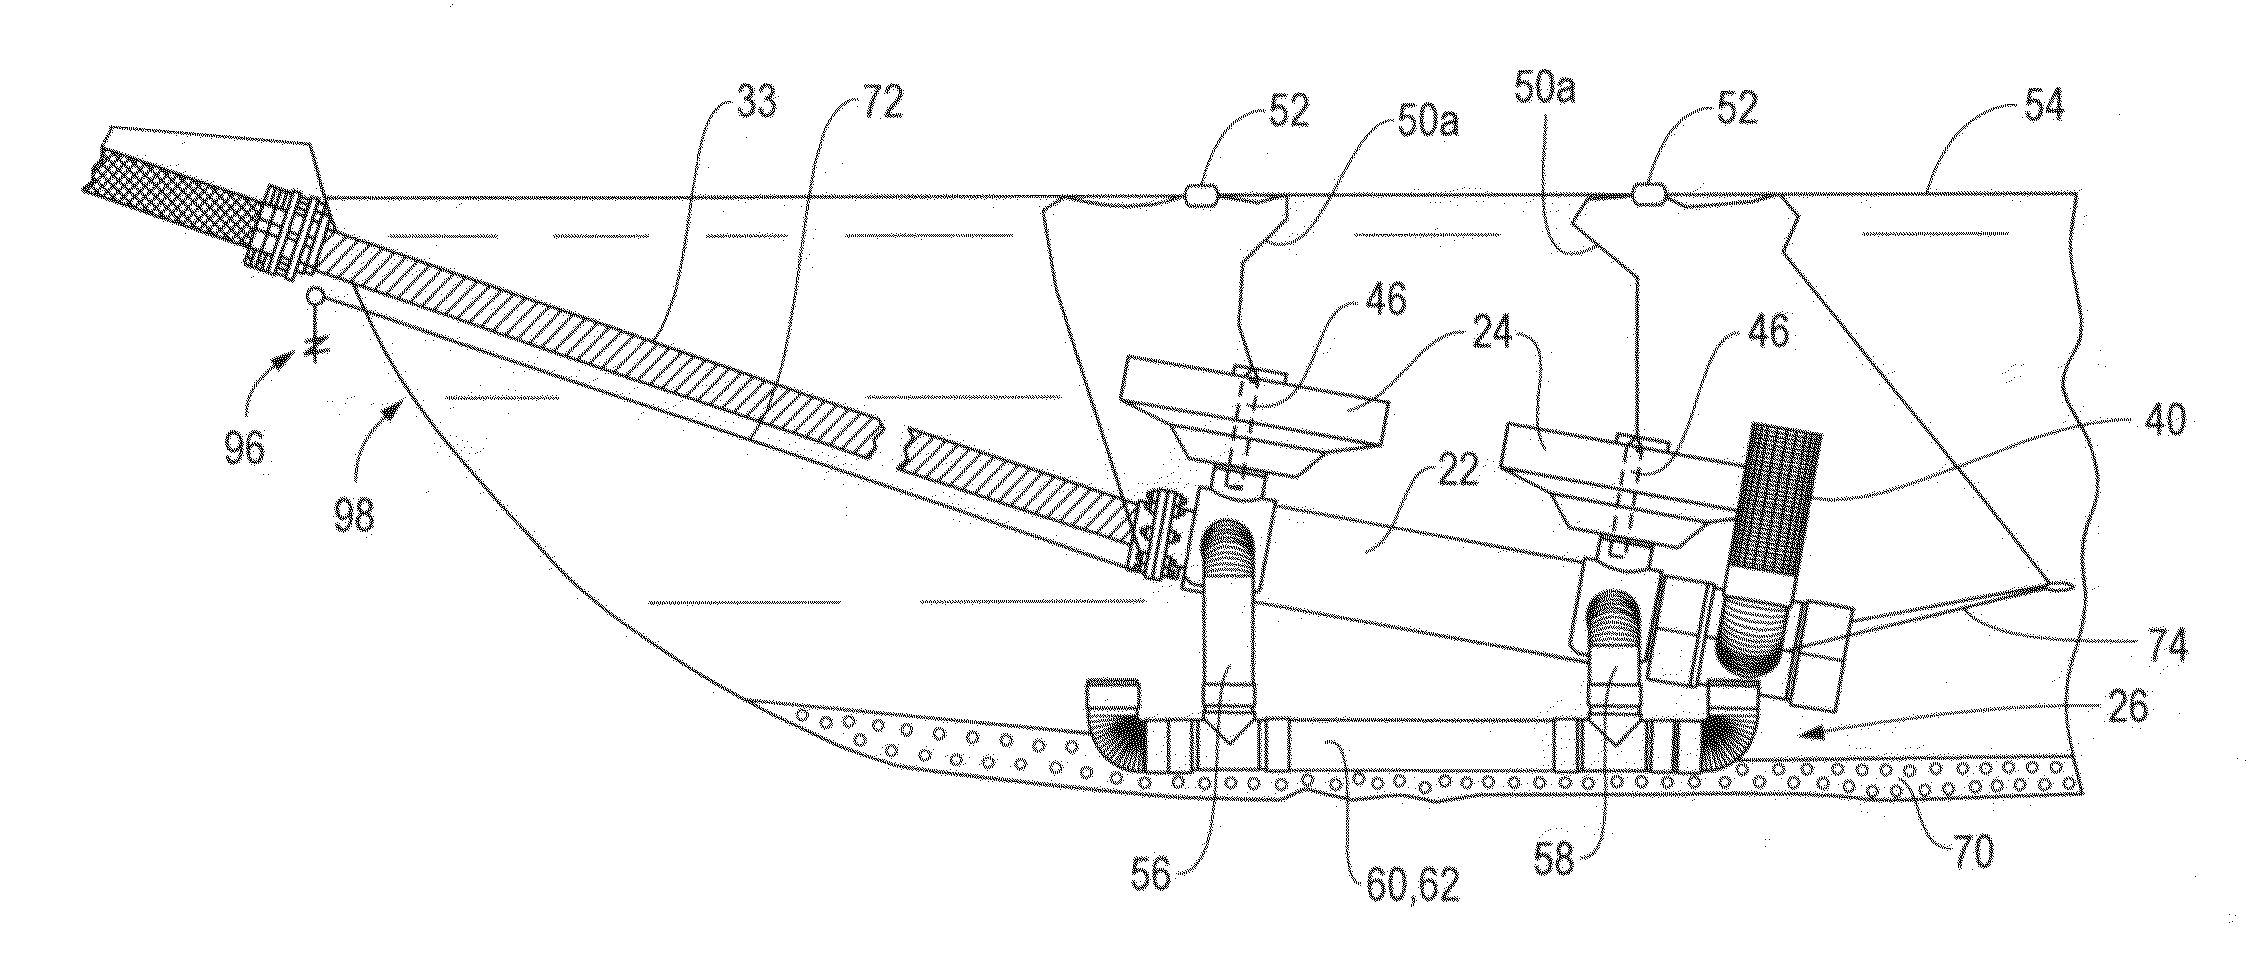 Pond Pump Placement Of Patent Us7713031 Submersible Pump Apparatus And Method